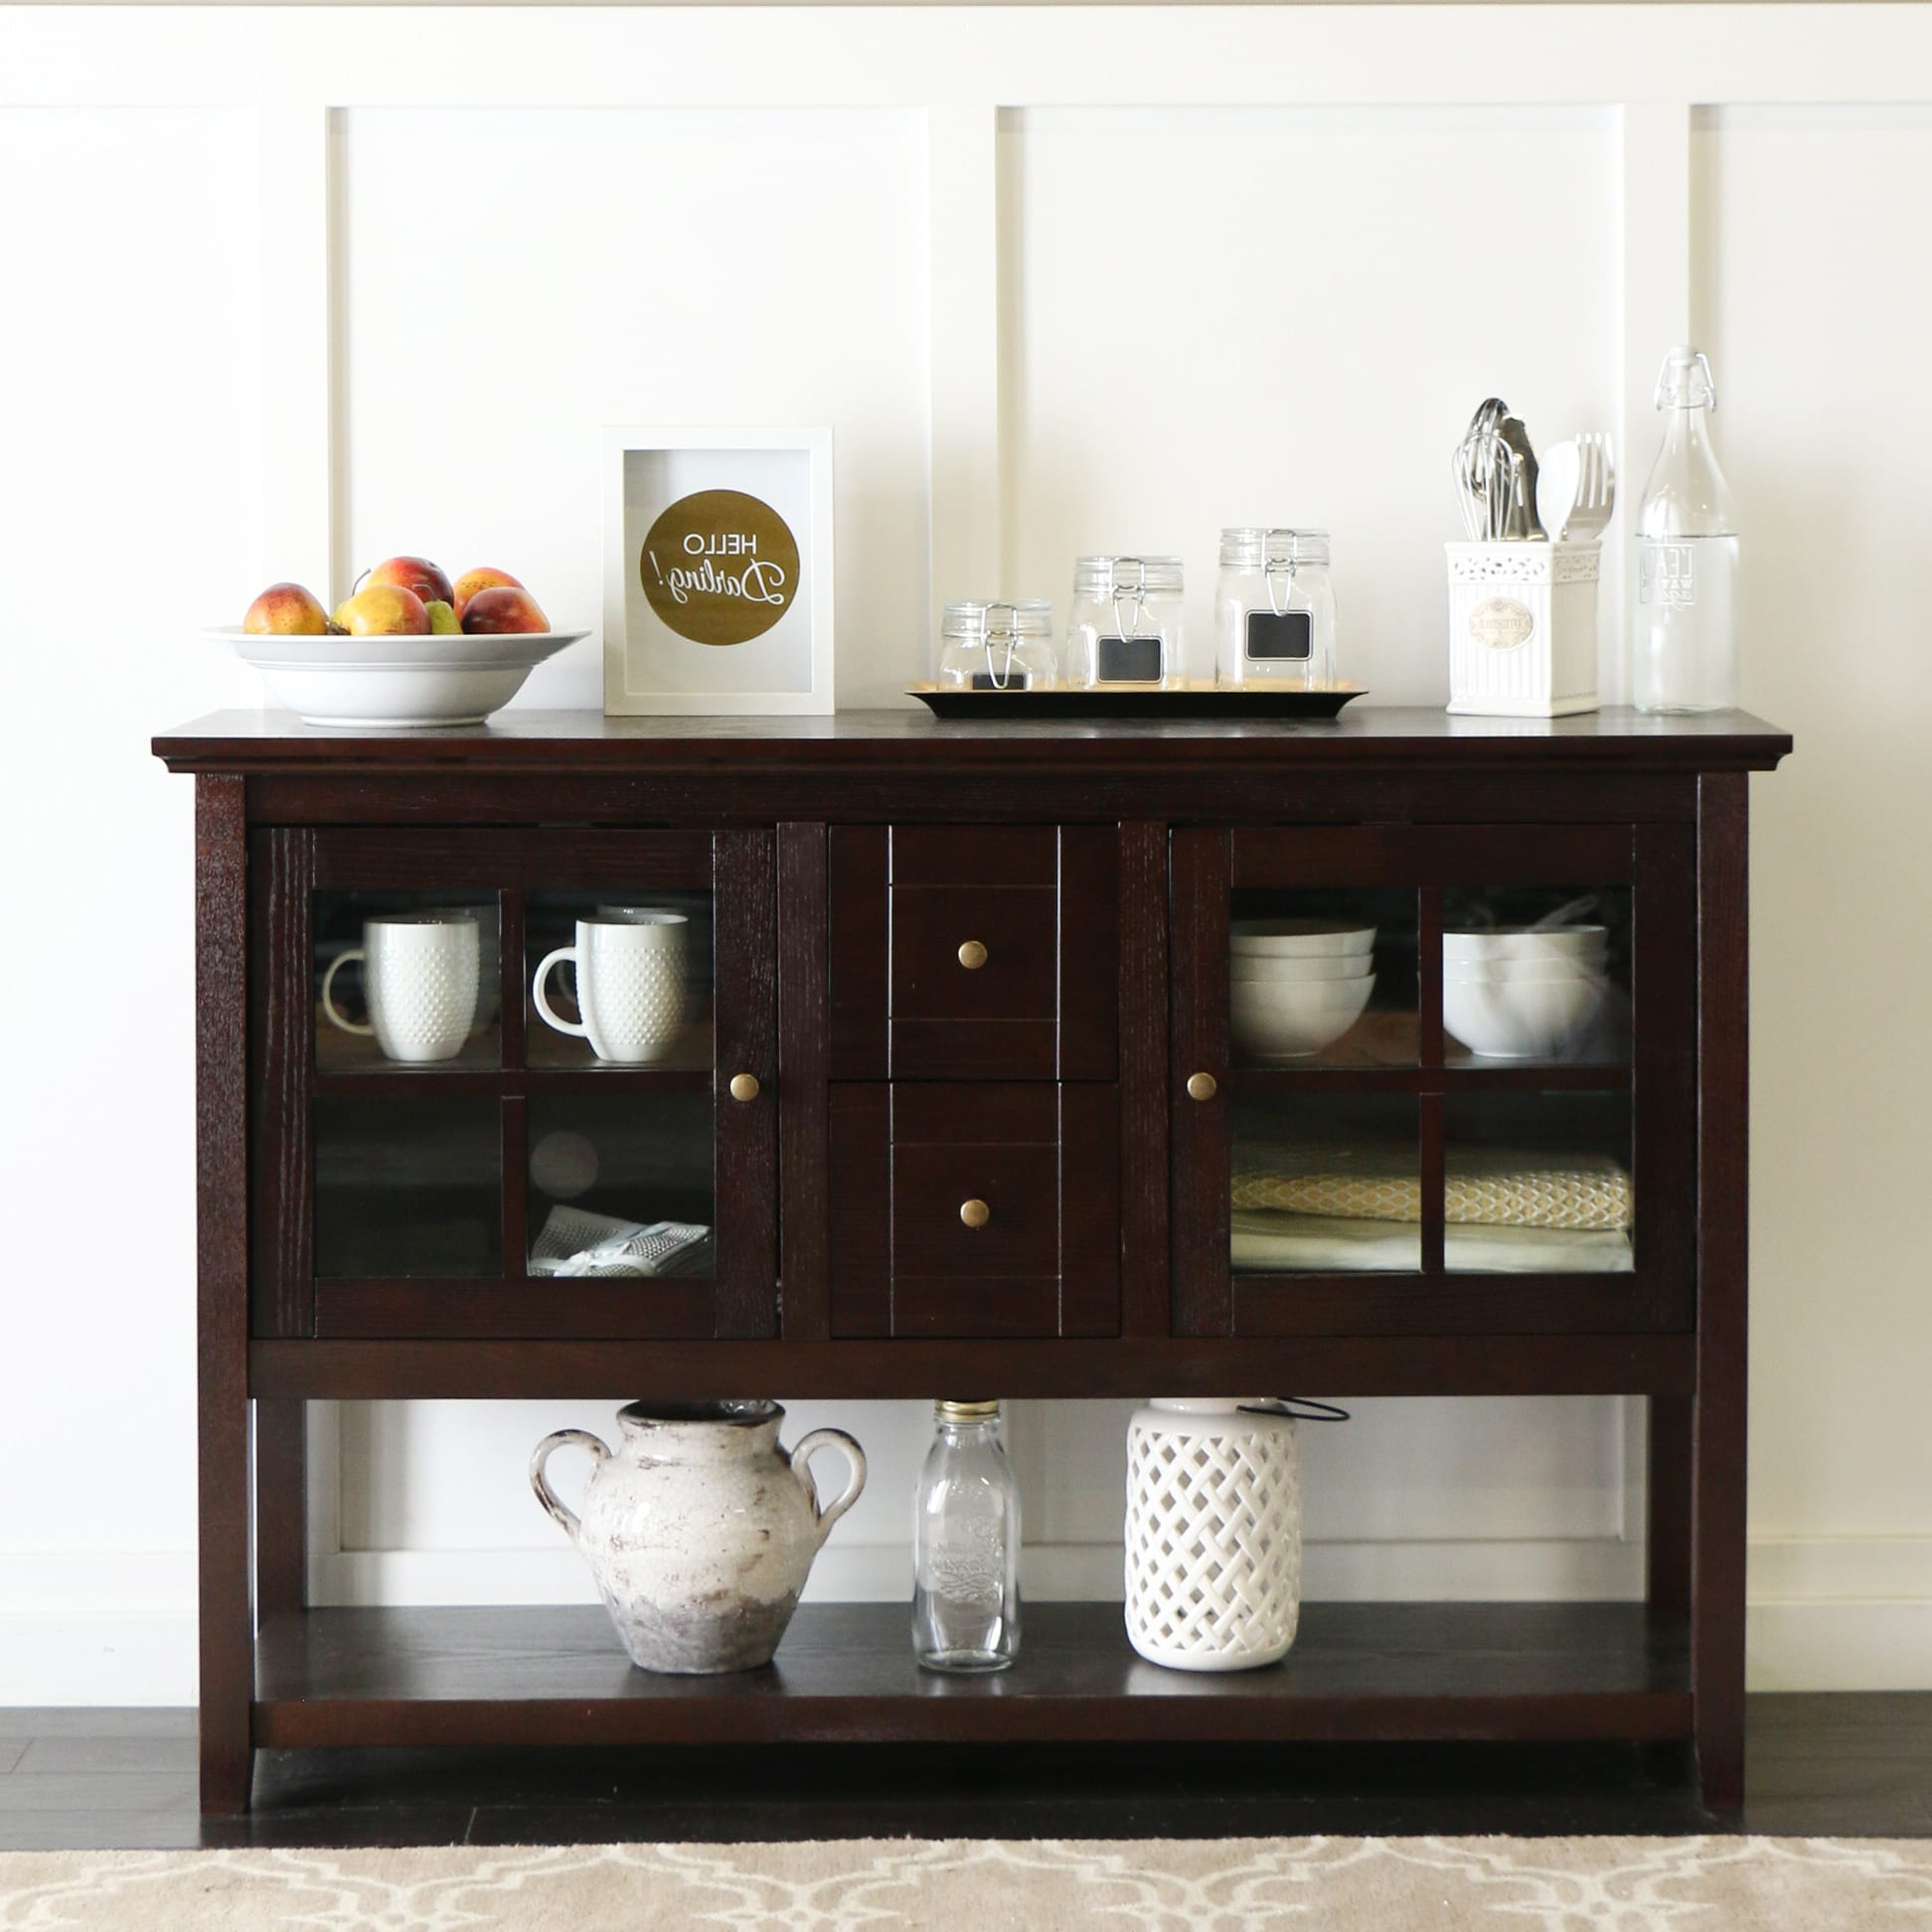 """Best And Newest Buffet 52 Inch Tv Console Table – Espressowalker Edison Inside Slattery 52"""" Wide 2 Drawer Buffet Tables (View 19 of 20)"""